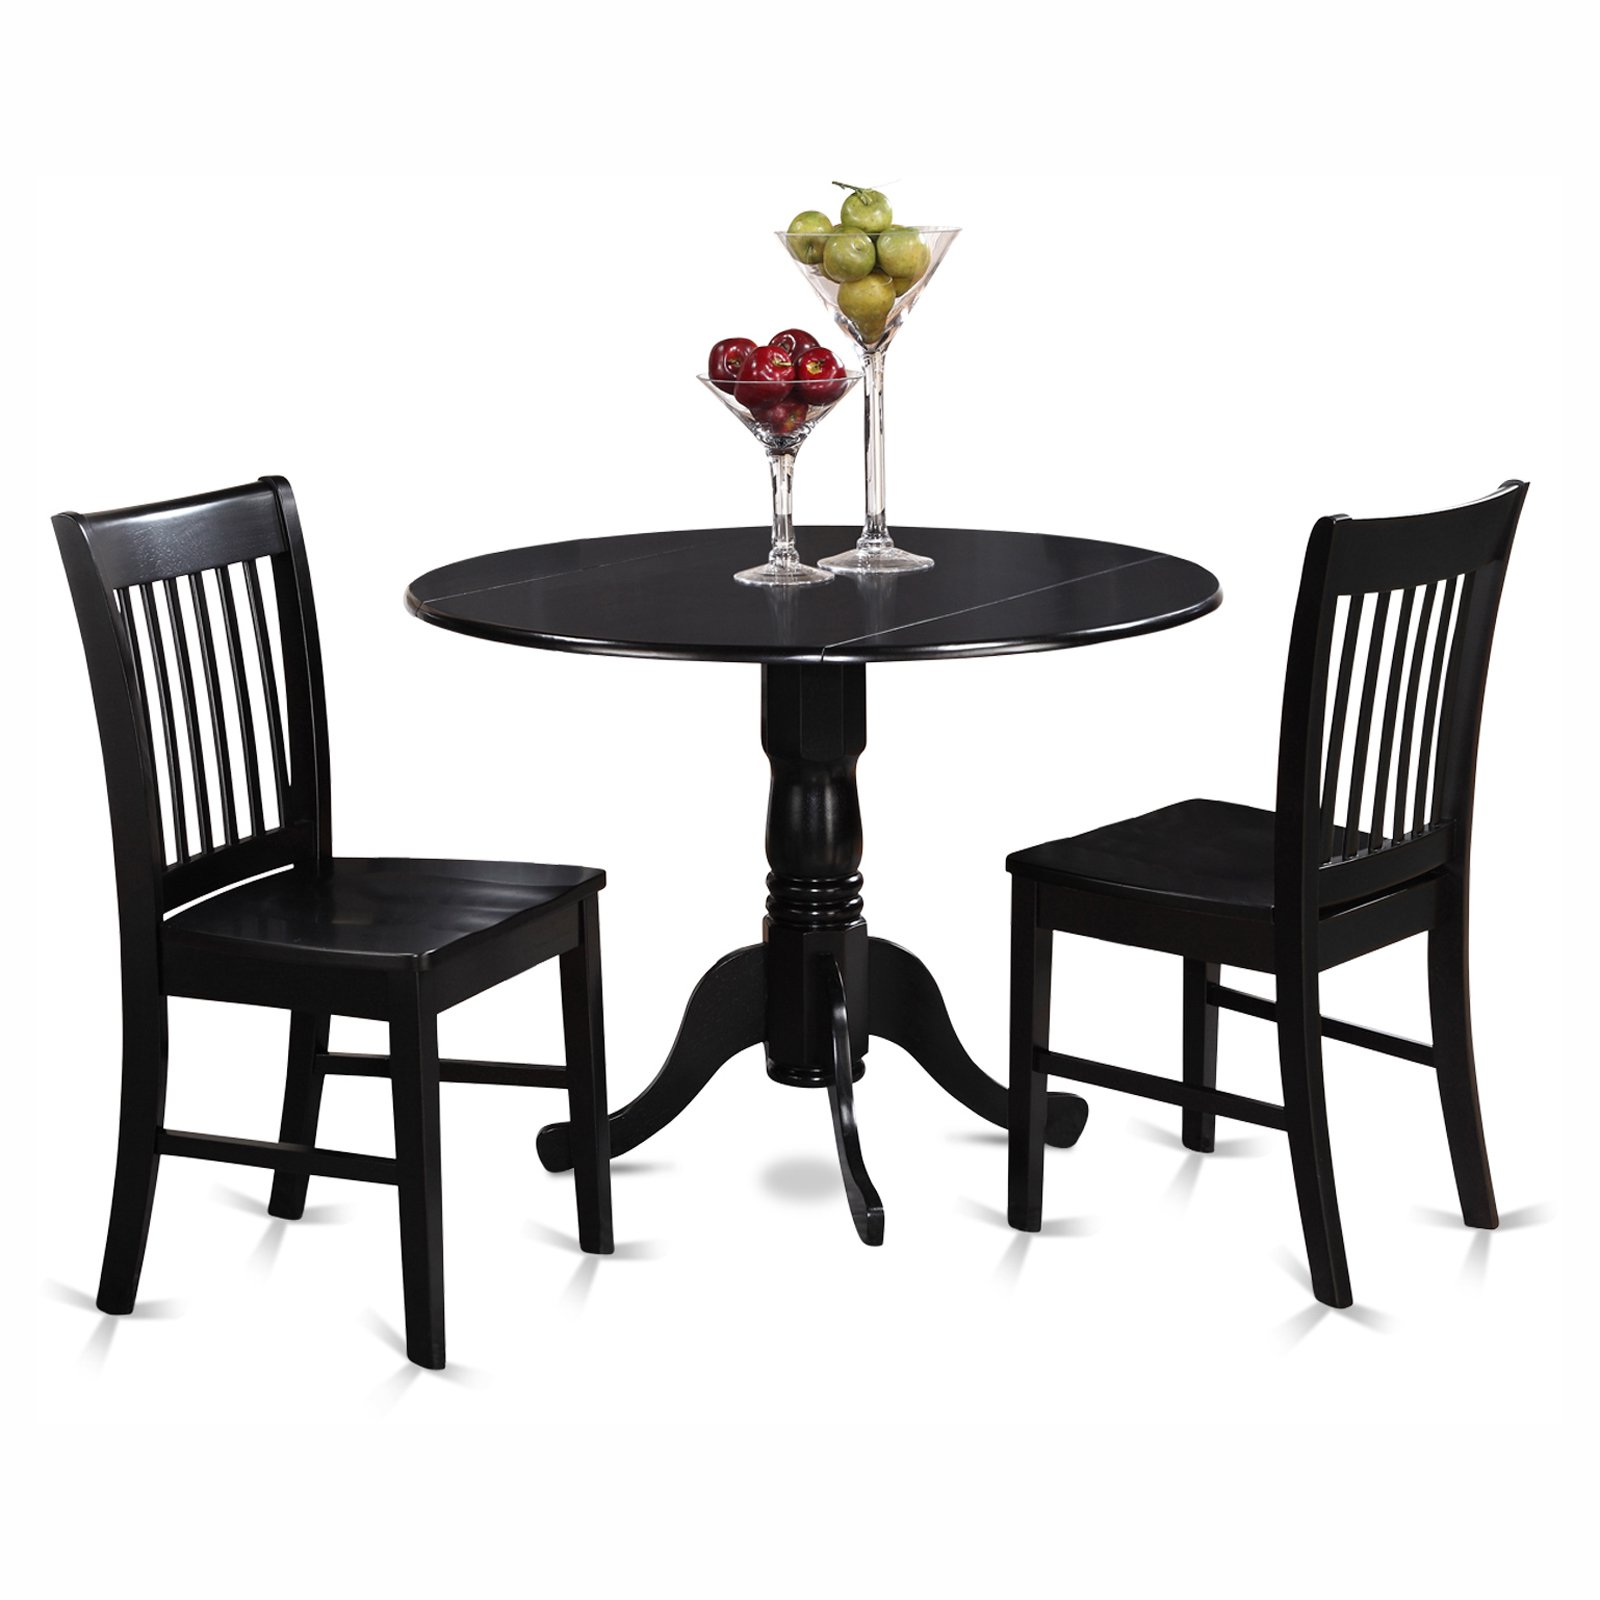 East West Furniture Dublin 3 Piece Round Dining Table Set with Norfolk Wooden Seat Chairs